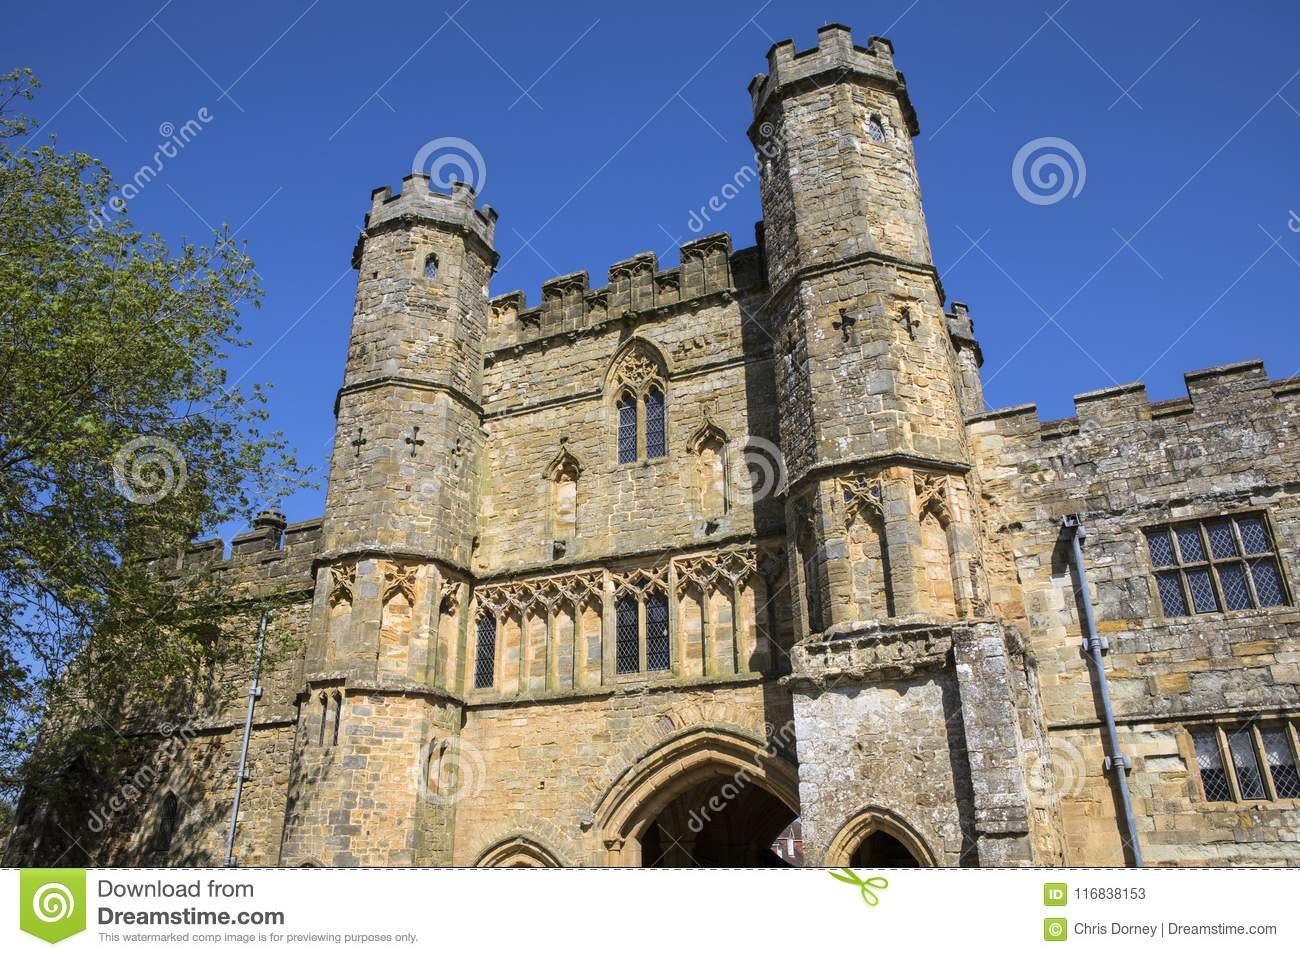 Gatehouse of Battle Abbey in Sussex